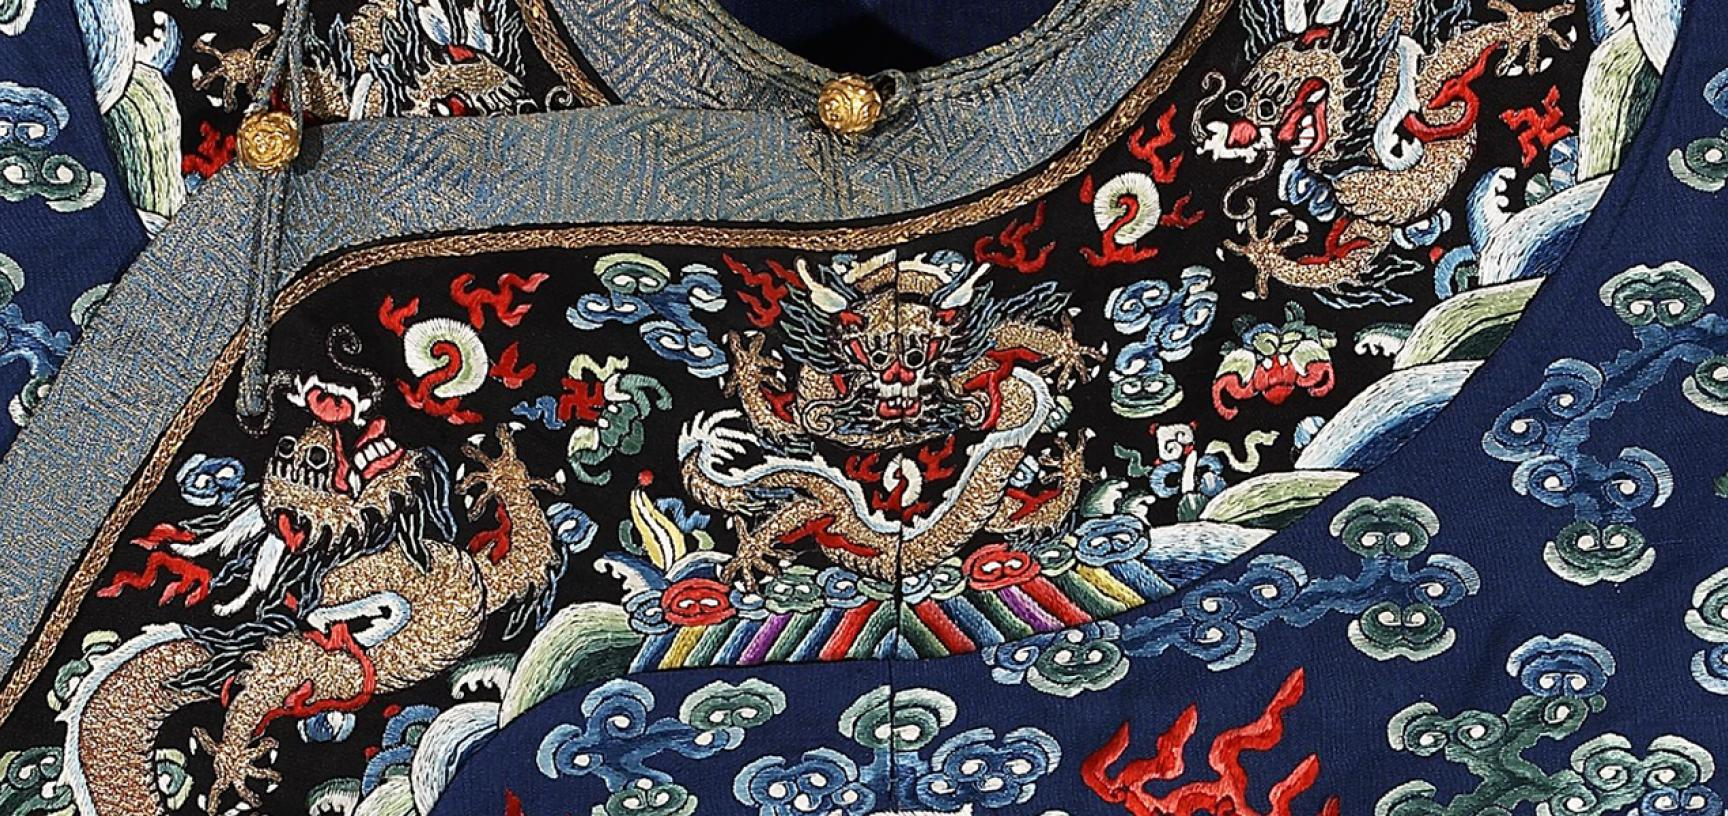 Man's formal robes (detail)